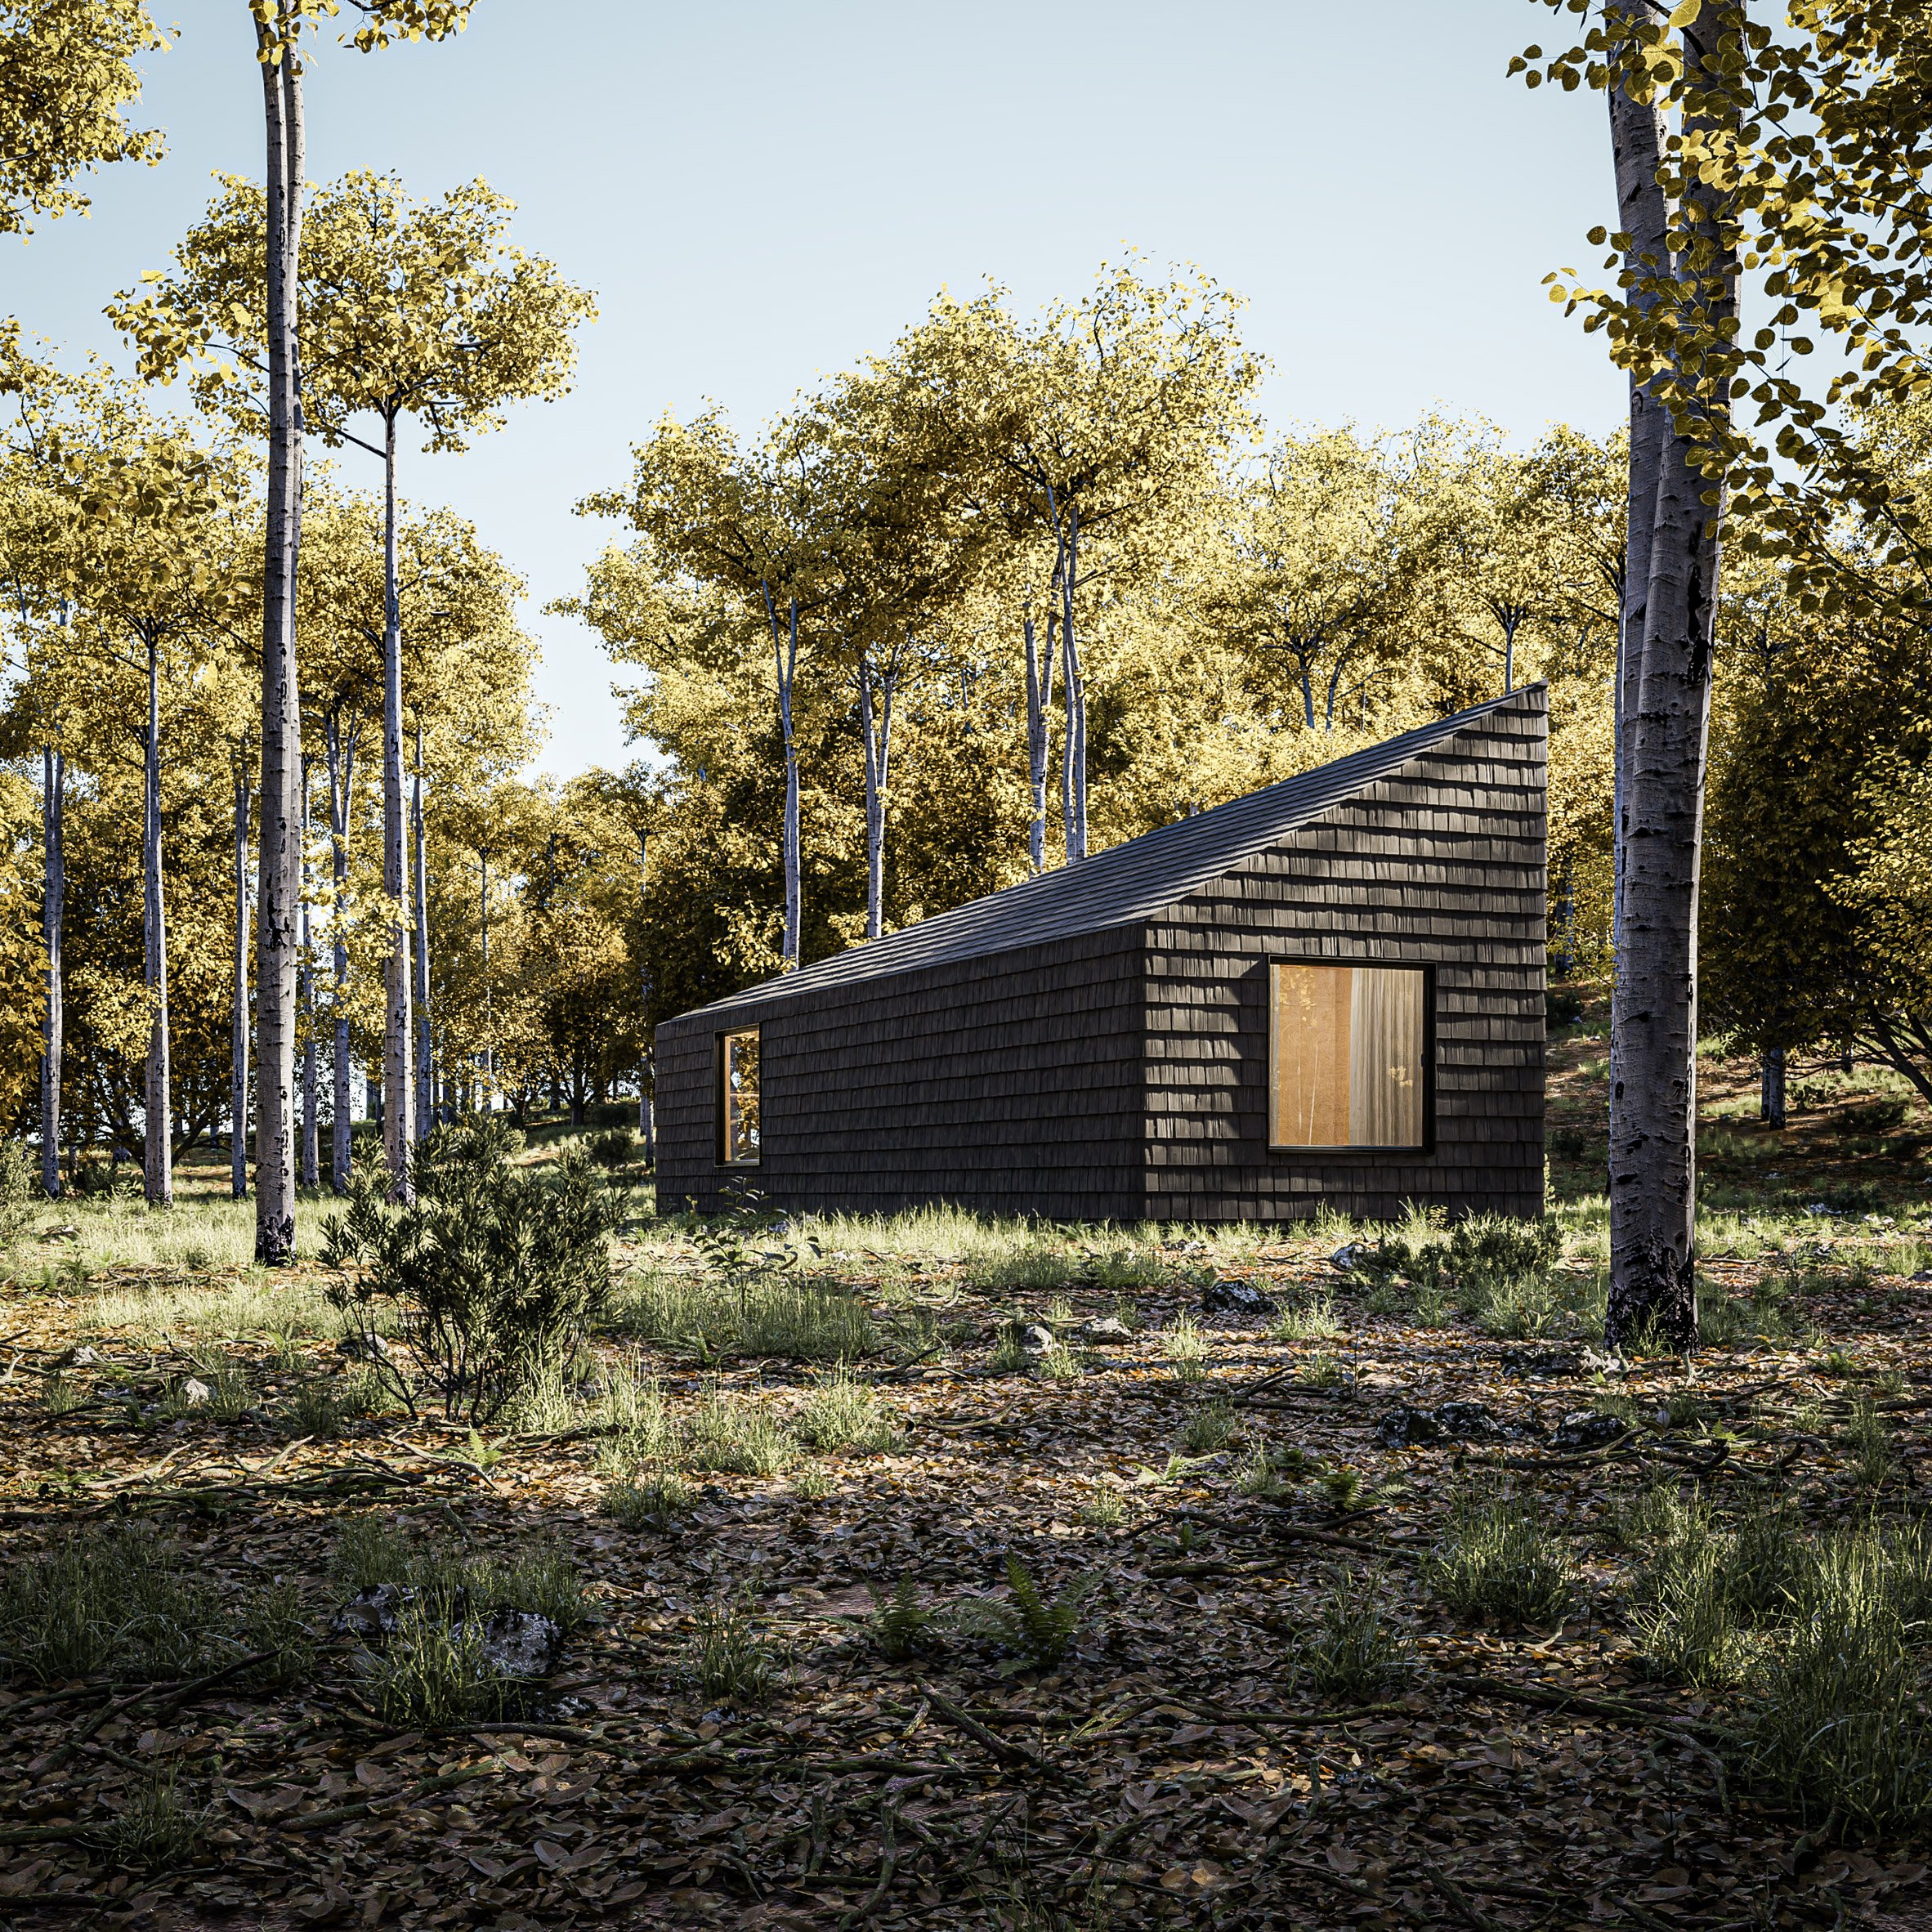 The cabins will function off-grid